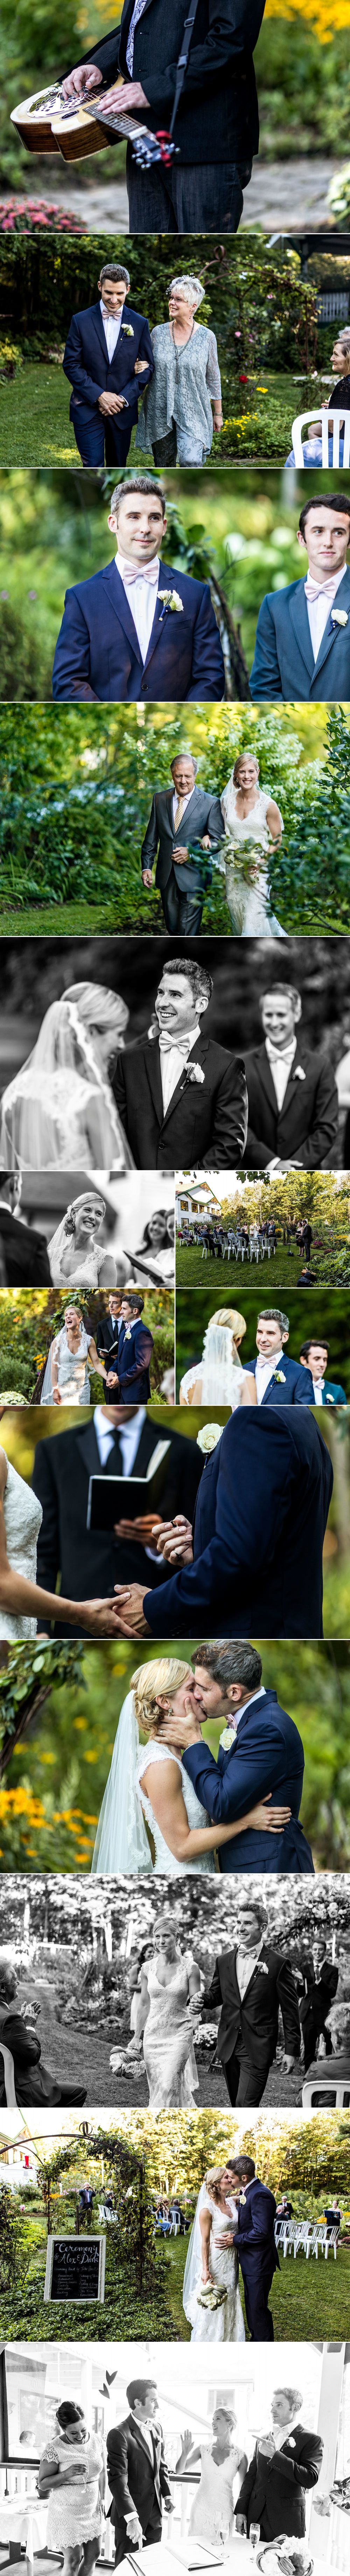 Outdoor cottage wedding ceremony photographs